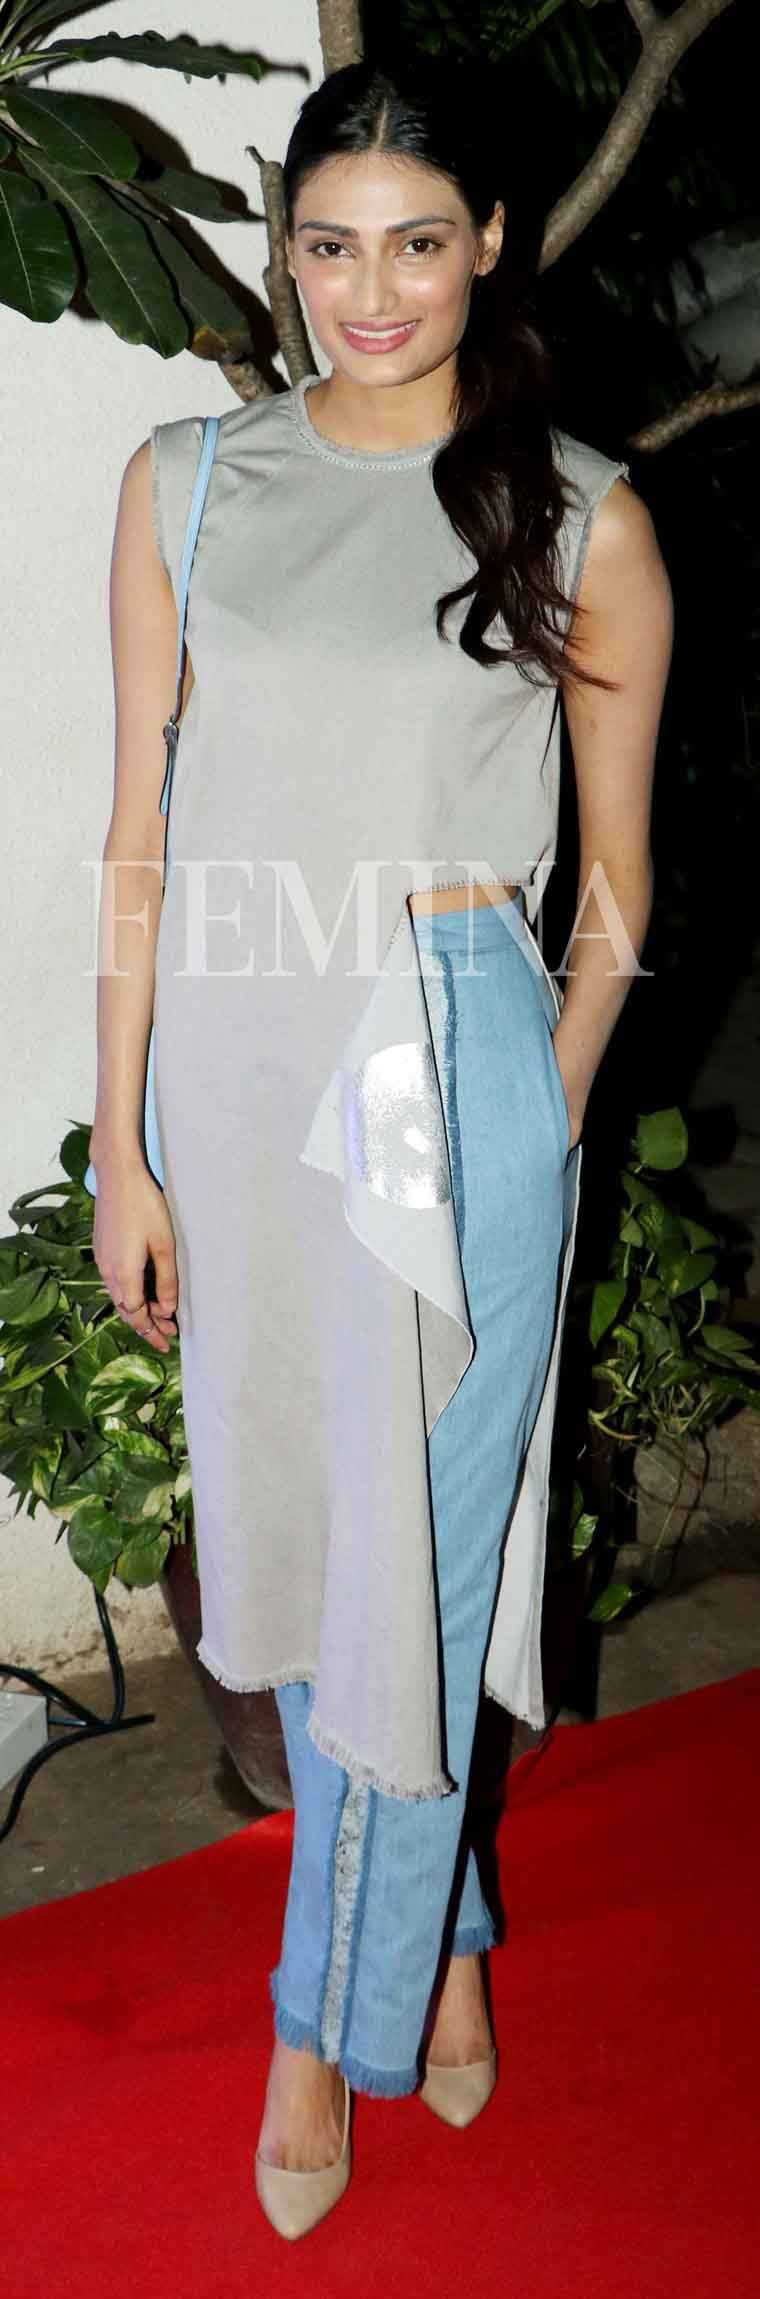 Athiya Shetty stepped out in asymmetrical separates by Kanelle proving that it's good to keep things wonky once in a while. Inspired by Athiya's look we've put together the season's hottest asymmetrical separates to invest in right now. Pay attent